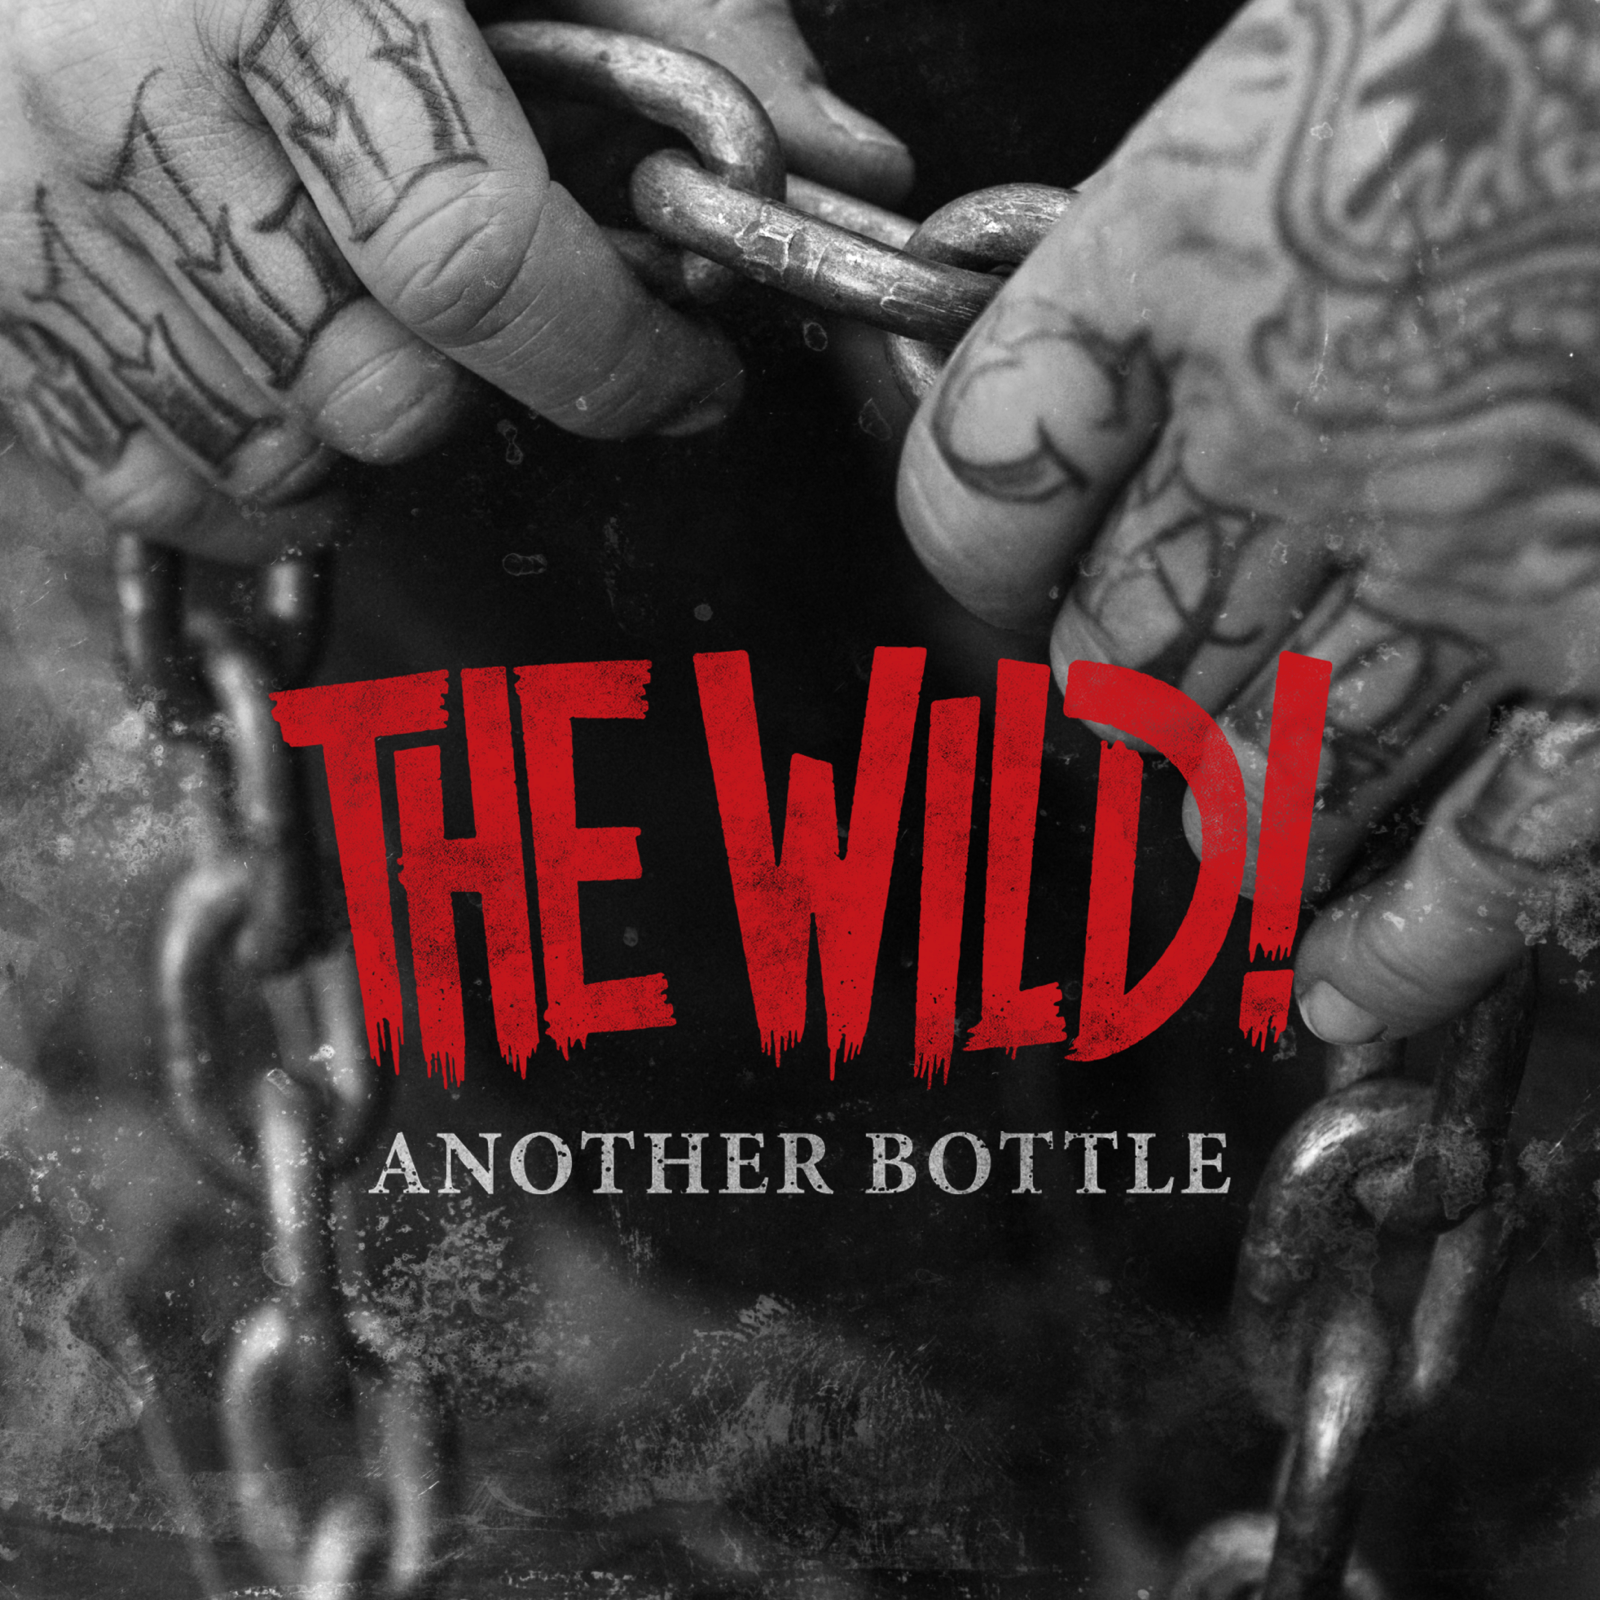 The Wild! - Another Bottle